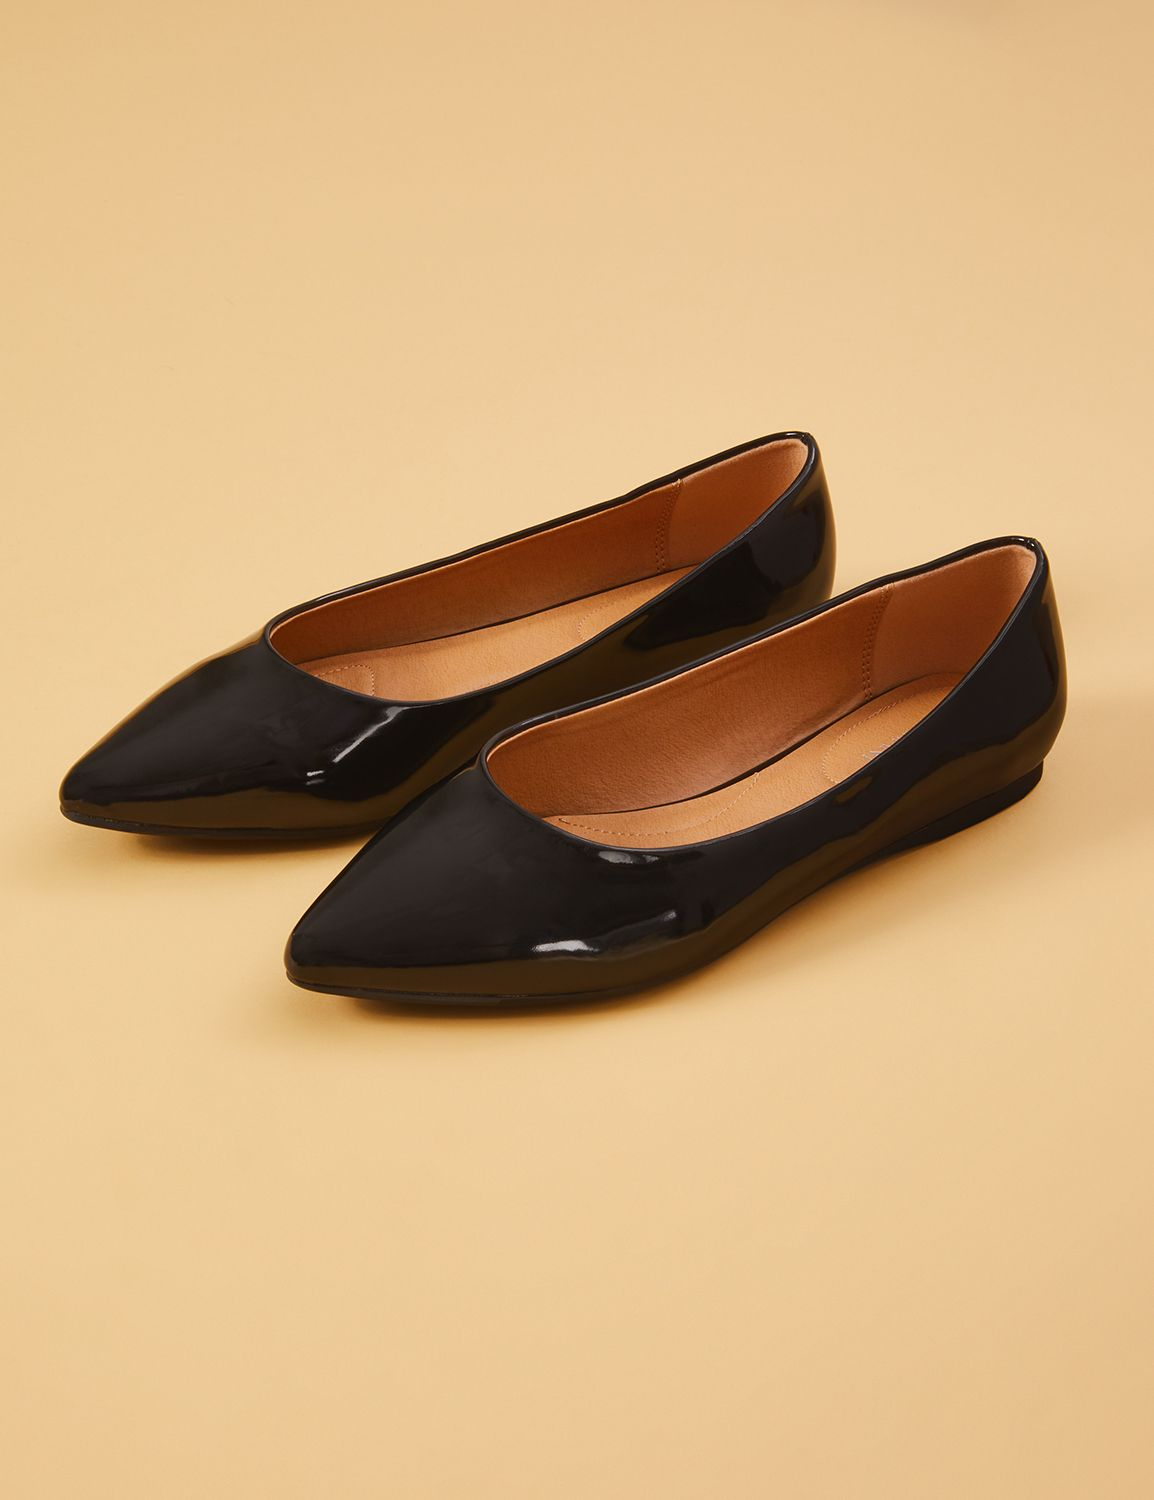 1950s Style Shoes | Heels, Flats, Saddle Shoes Lane Bryant Womens Faux Patent Leather Pointed-Toe Flat 12W Black $39.95 AT vintagedancer.com